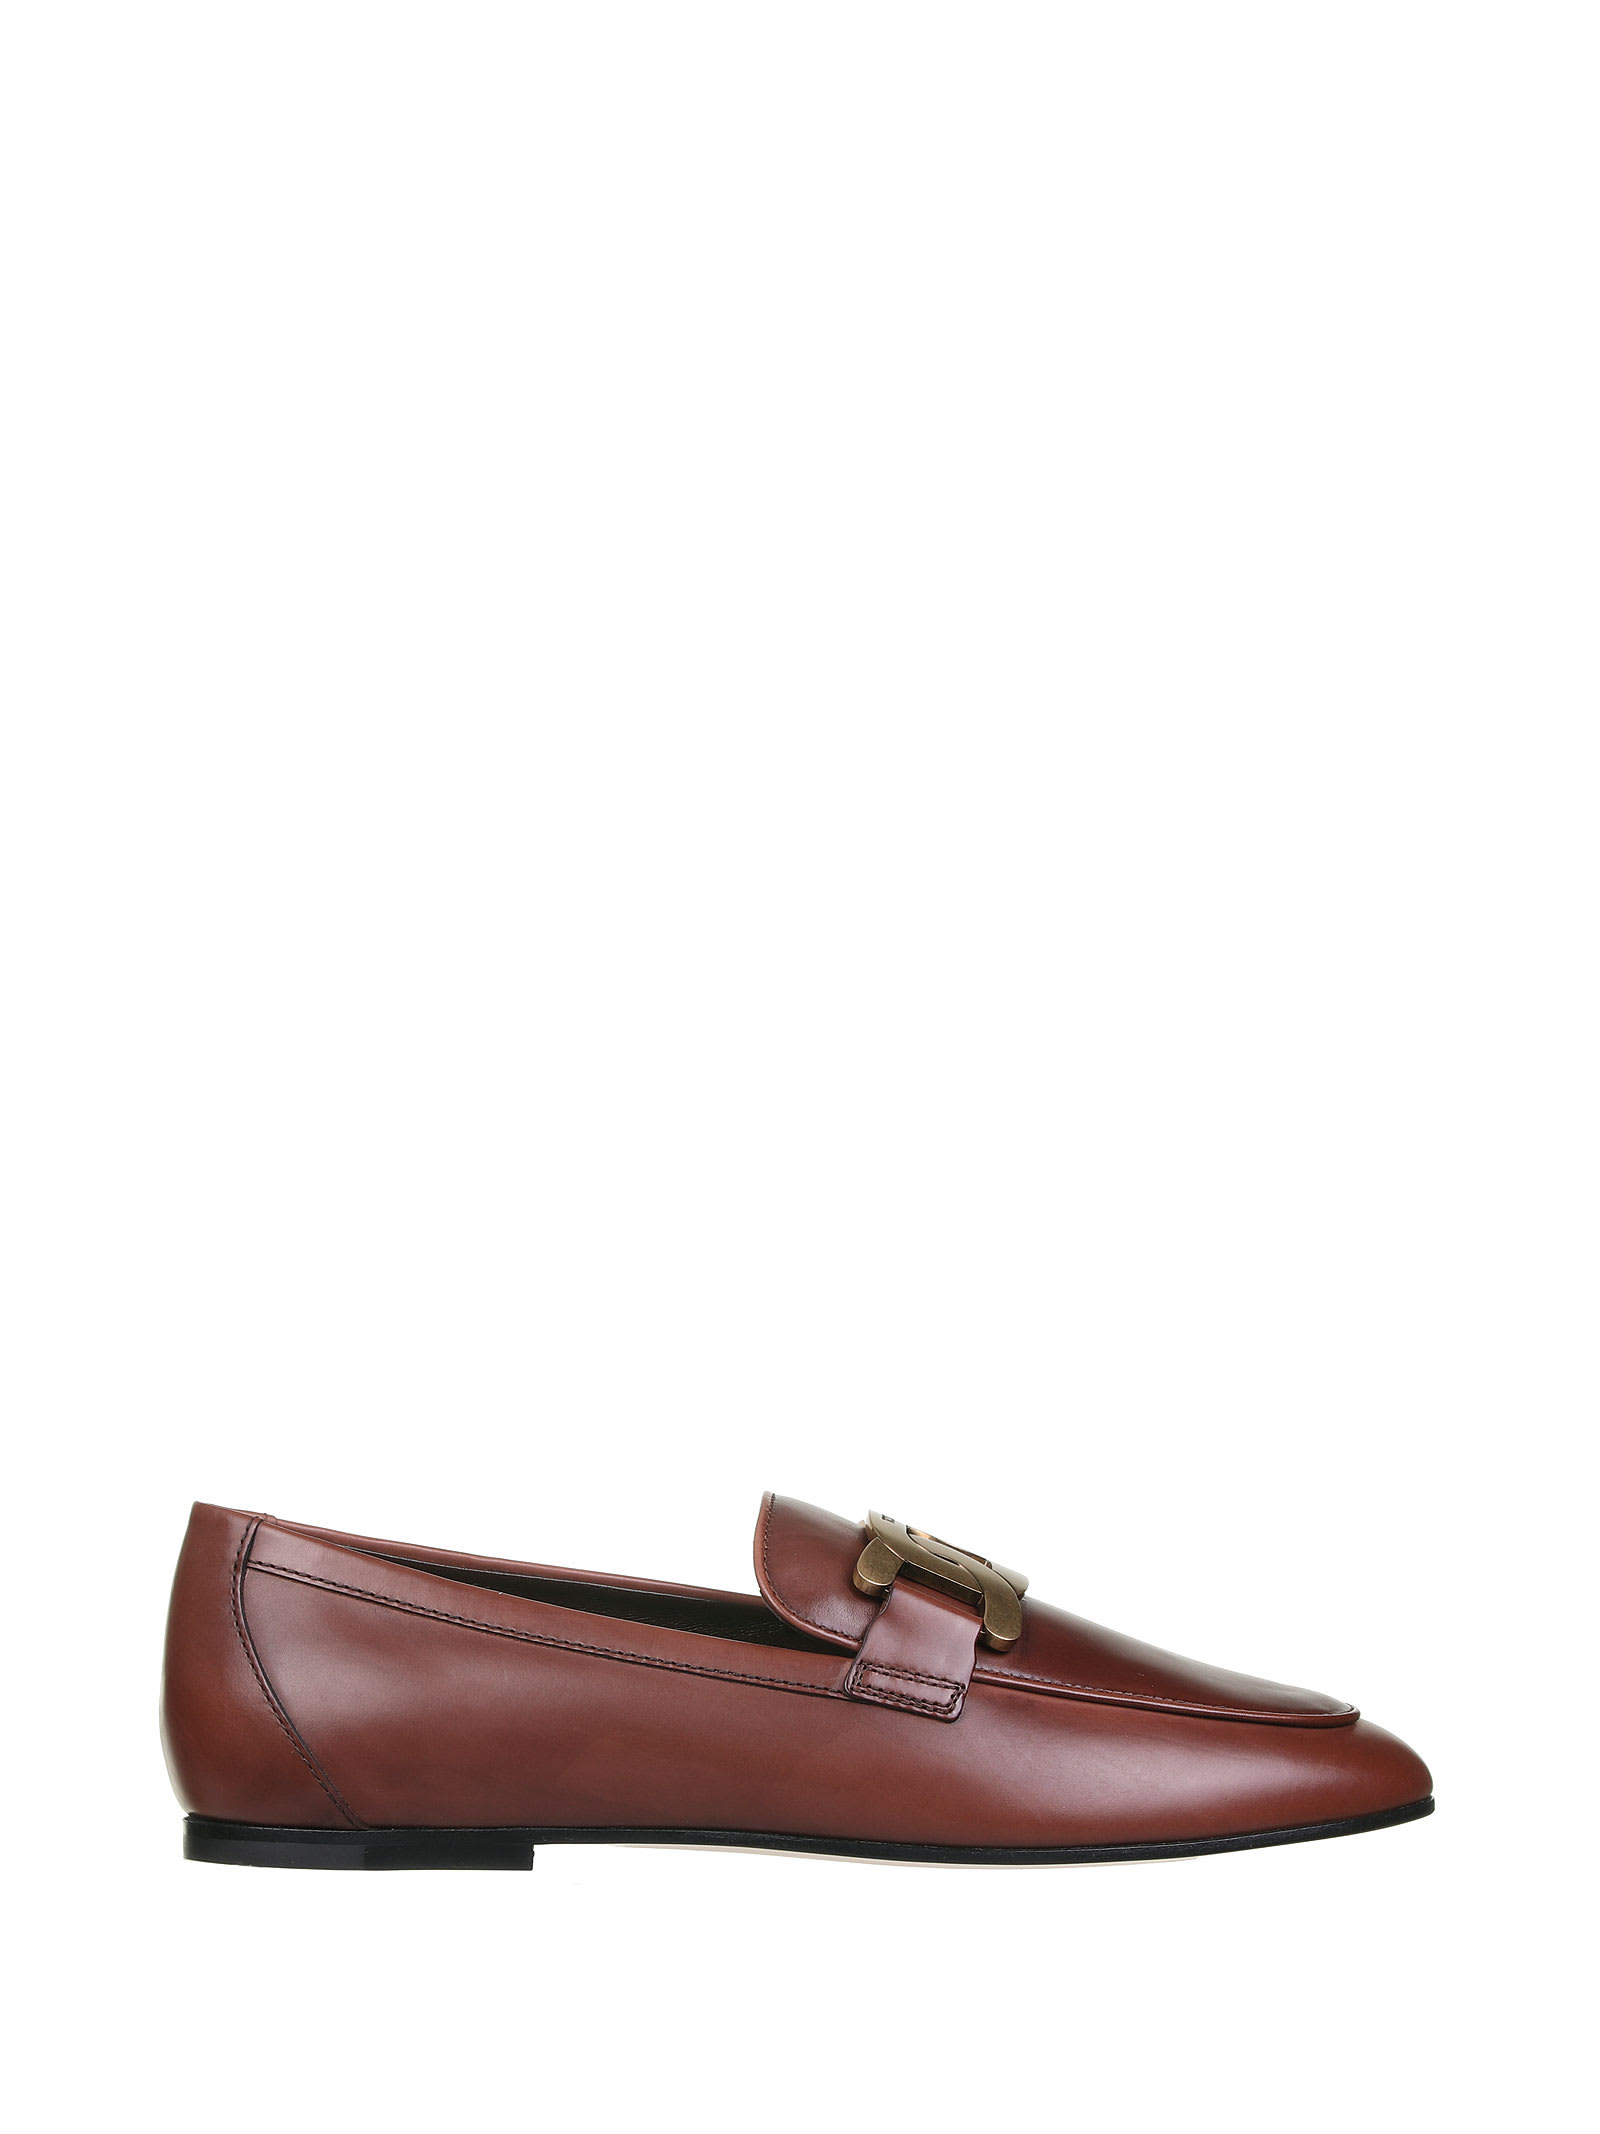 Tods Tods Kate Leather Loafers